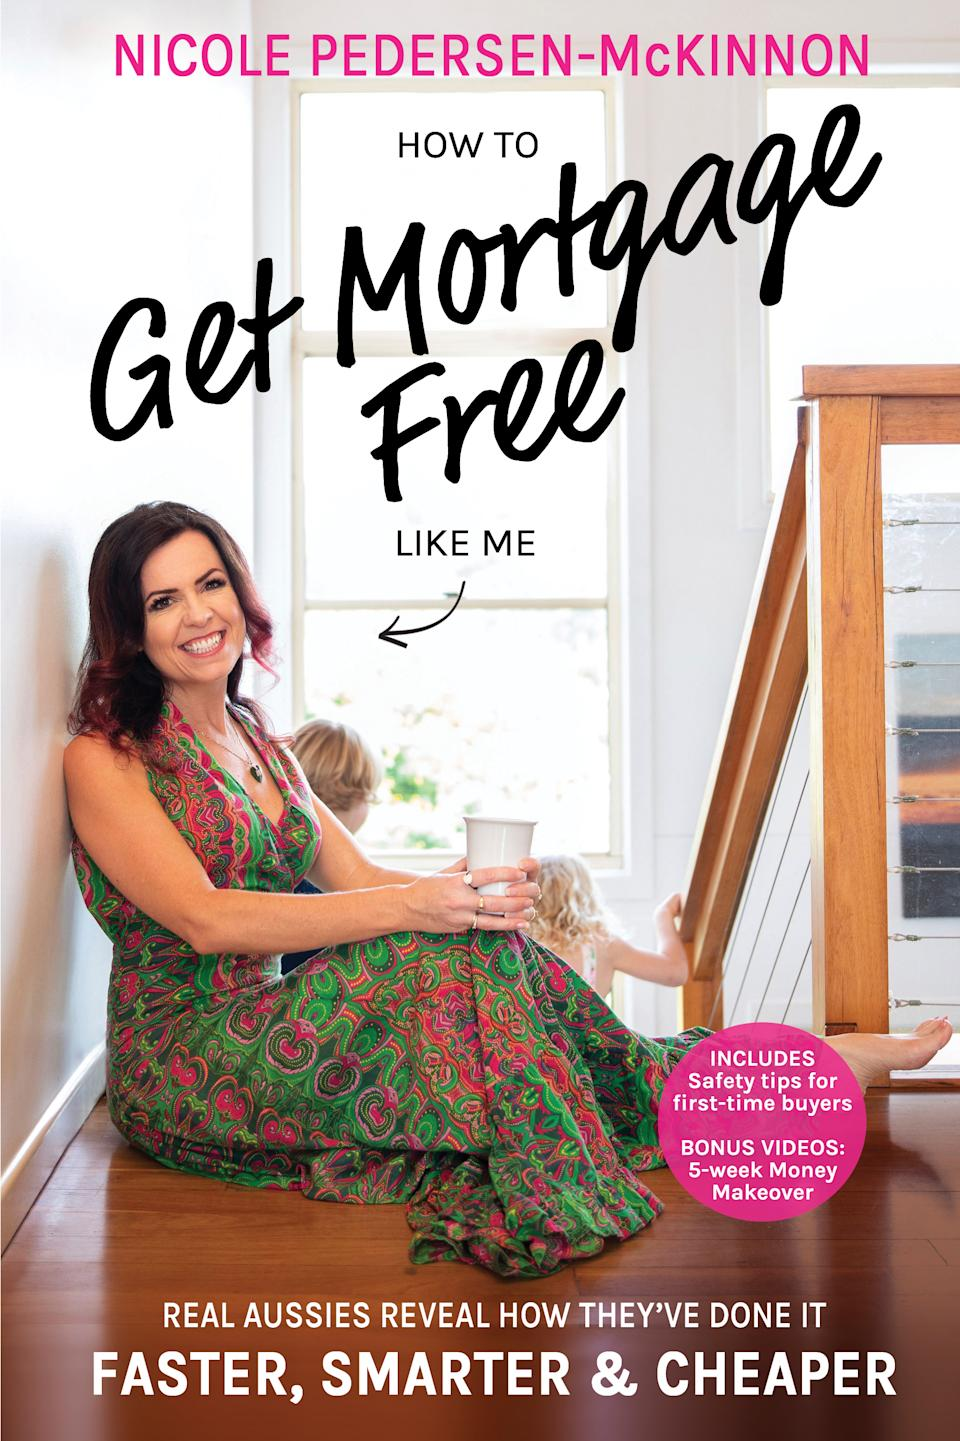 The front page of Nicole Pedersen-McKinnon new book How To Get Mortgage Free Like Me